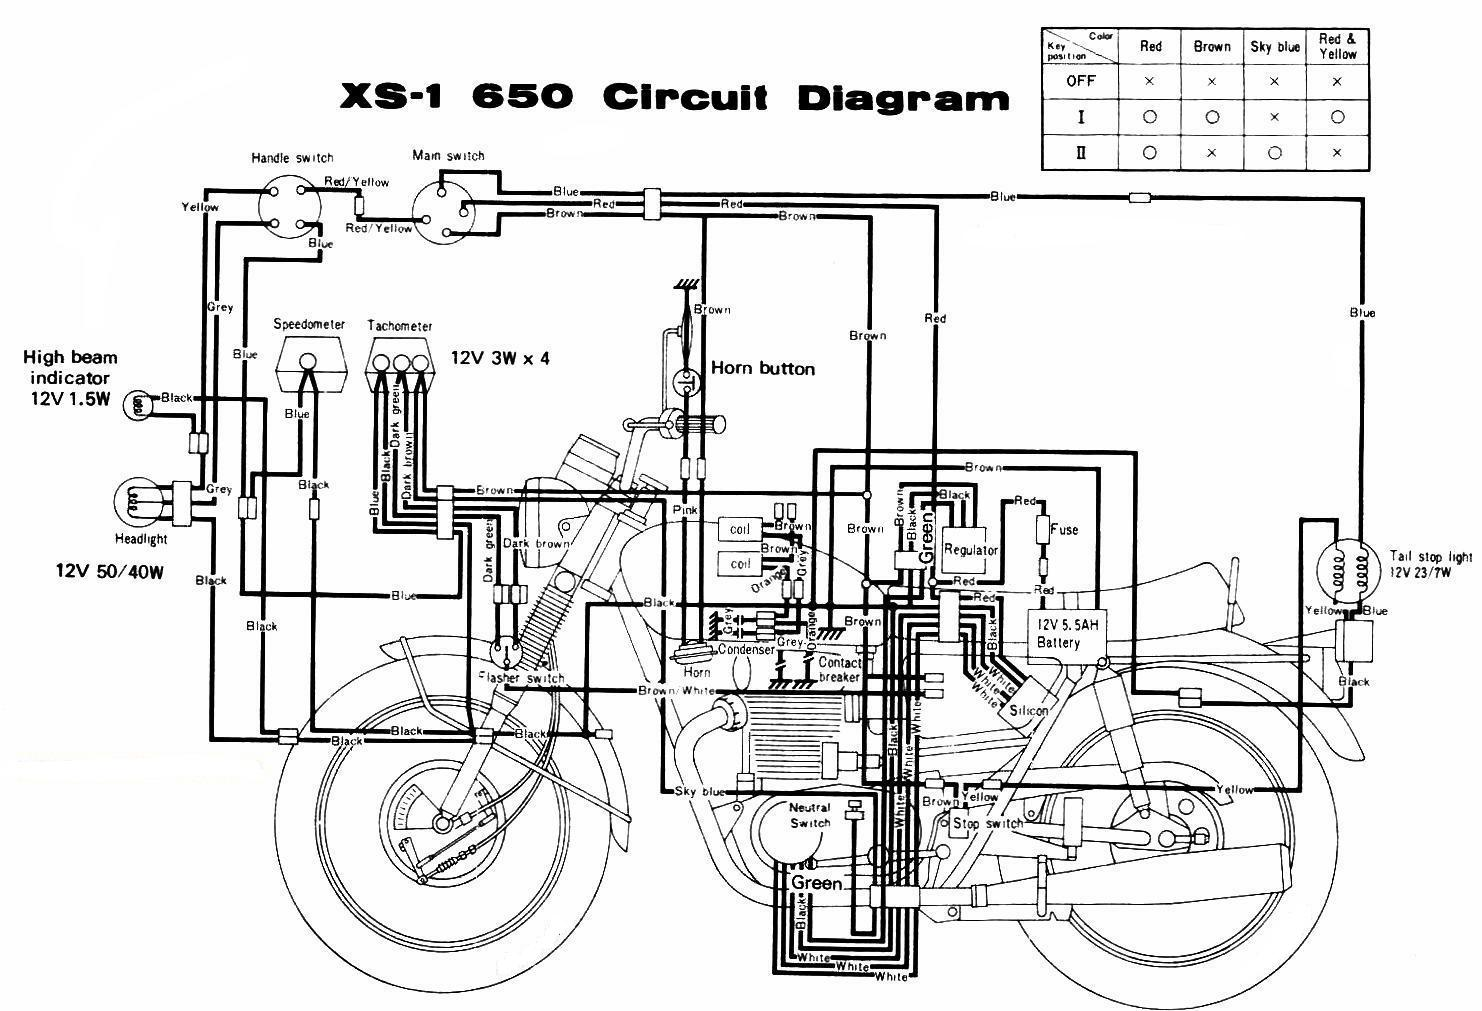 V Star Headlight Wiring Diagram Library Power Commander 1970 Xs1 Page 1 Diagrams